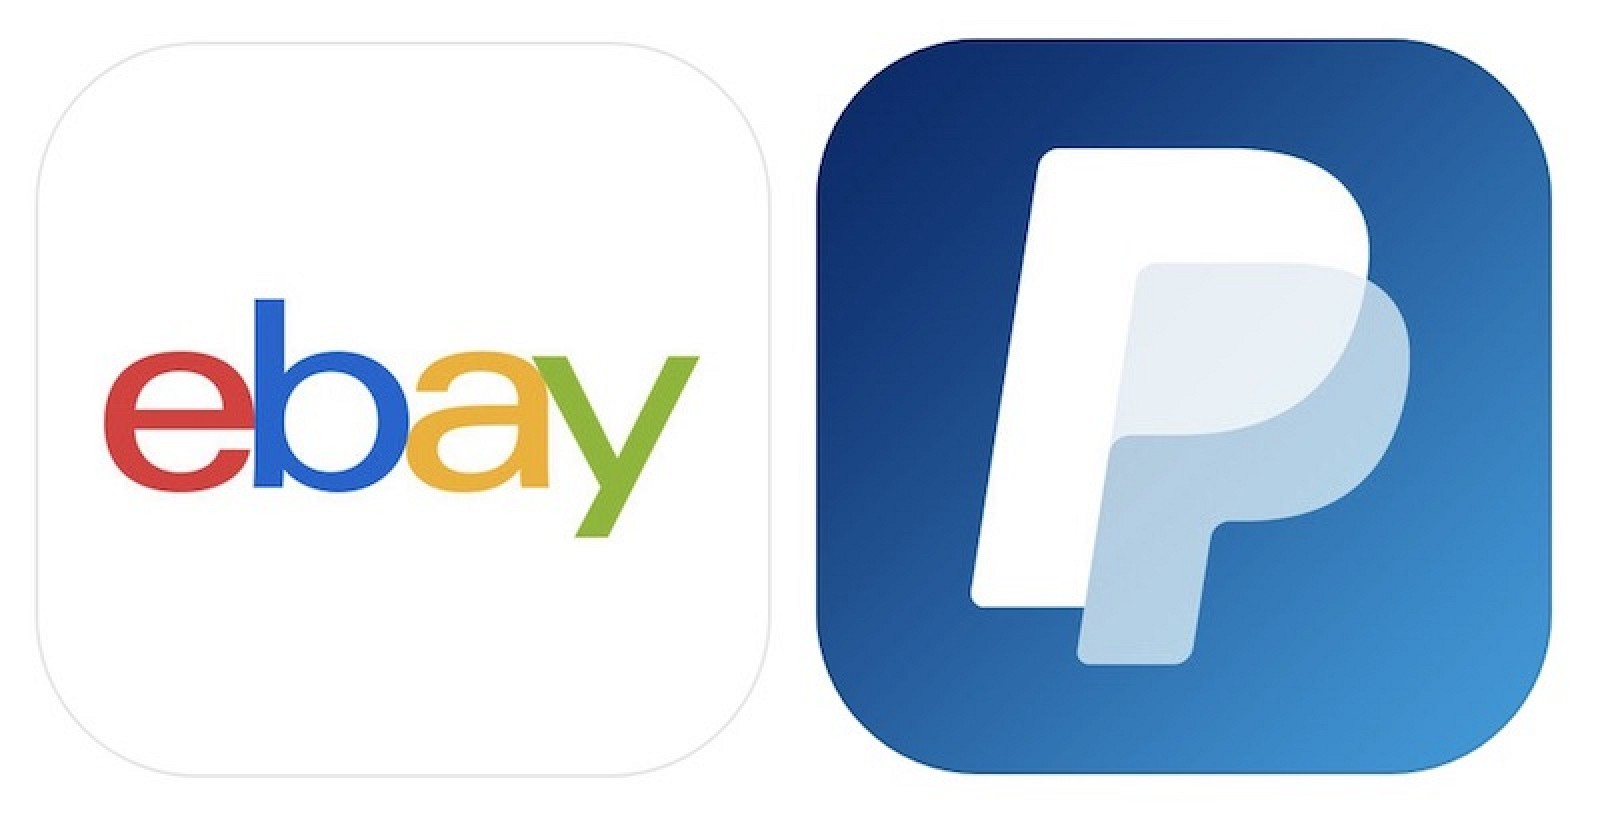 Ebay and Paypal app tiles